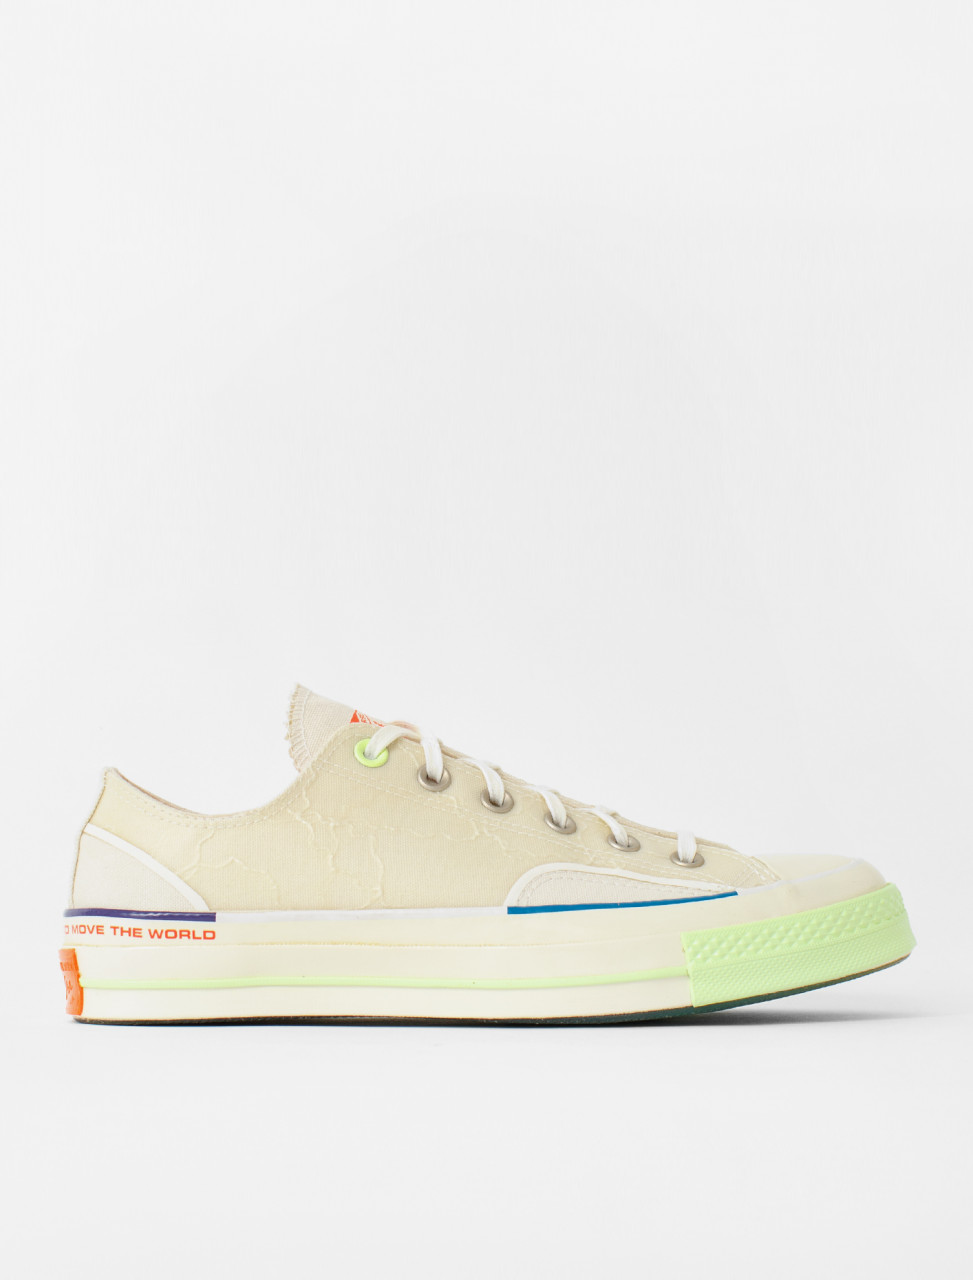 x Pigalle Chuck 70 Low Sneaker